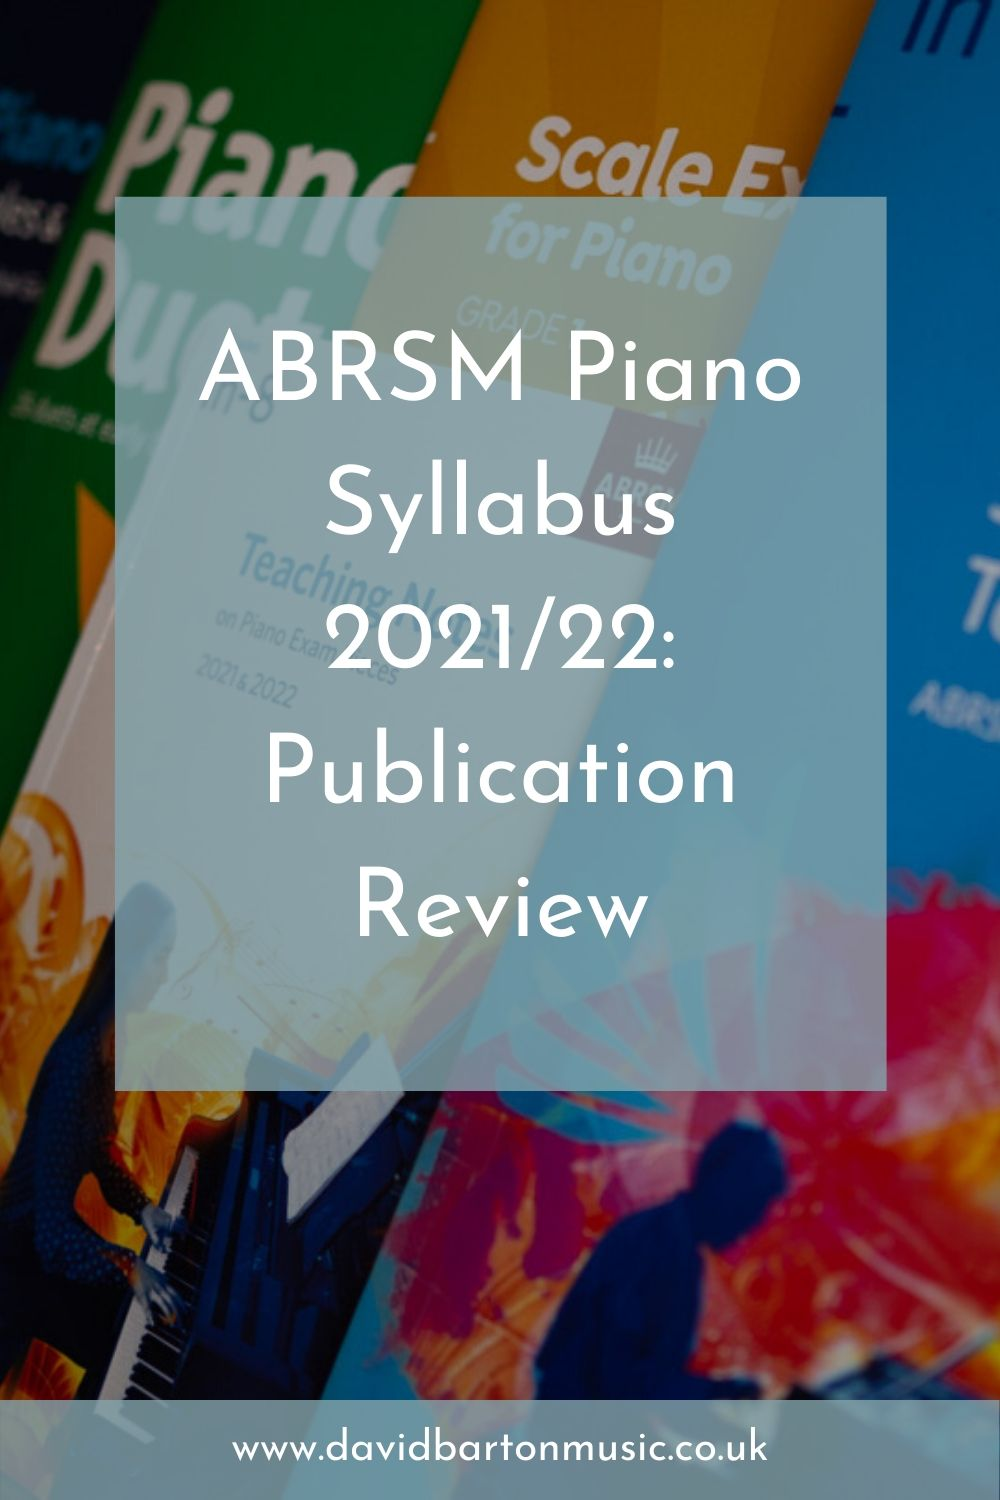 ABRSM Piano Syllabus 2021/22: Publication Review - Pinterest Graphic